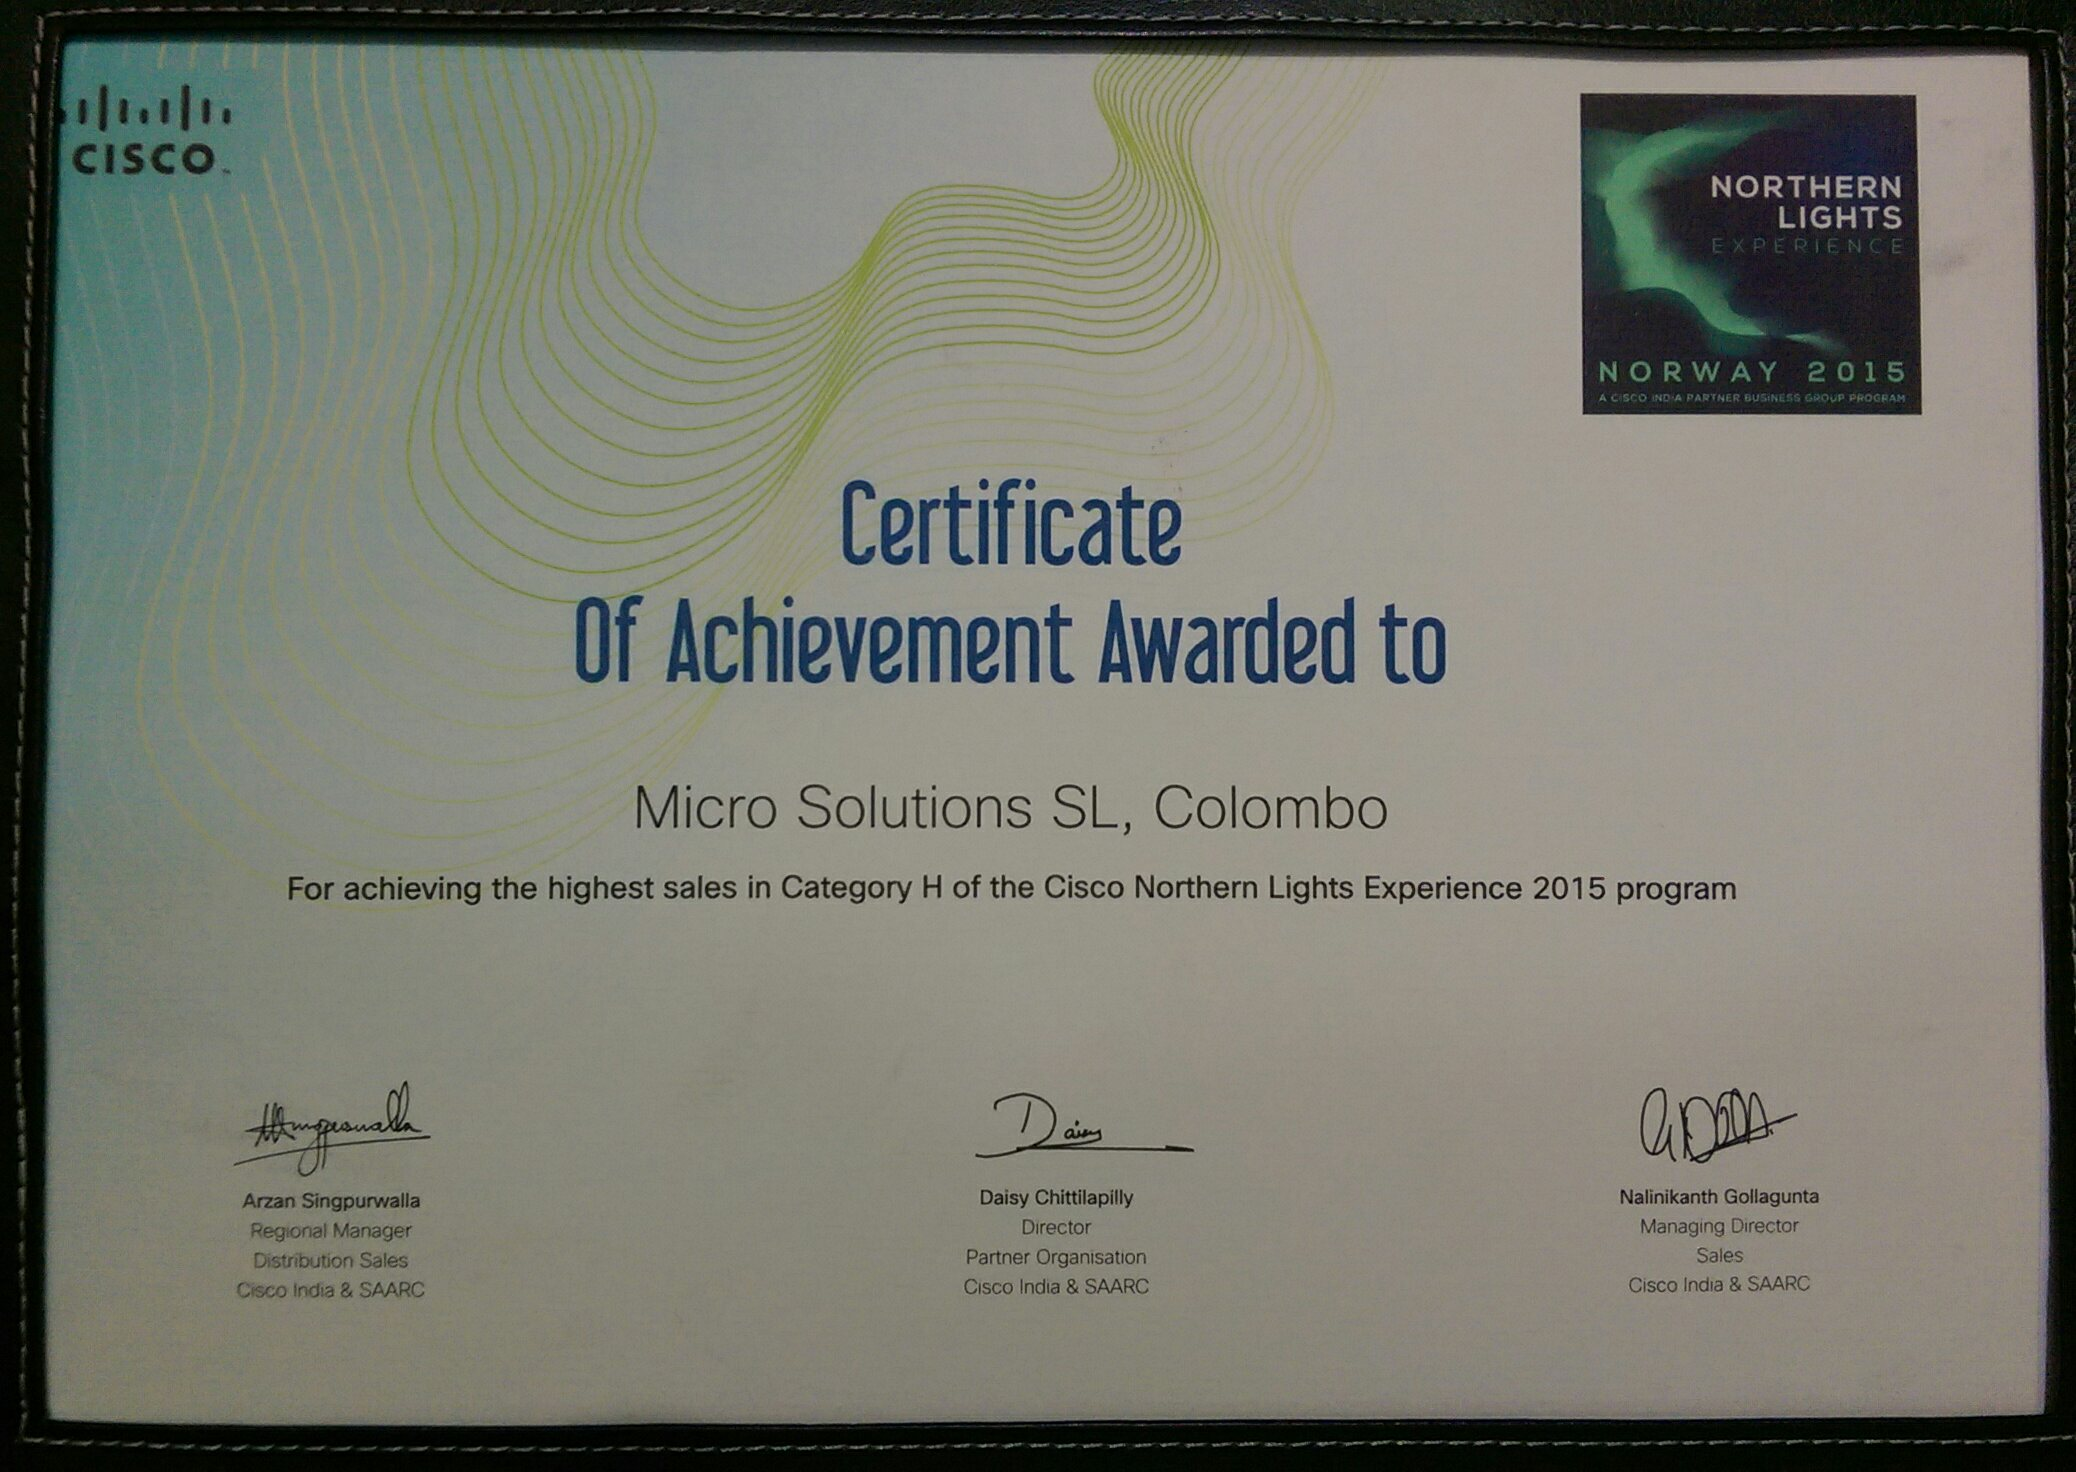 Northern Lights - Certificate of Achievement for achieving